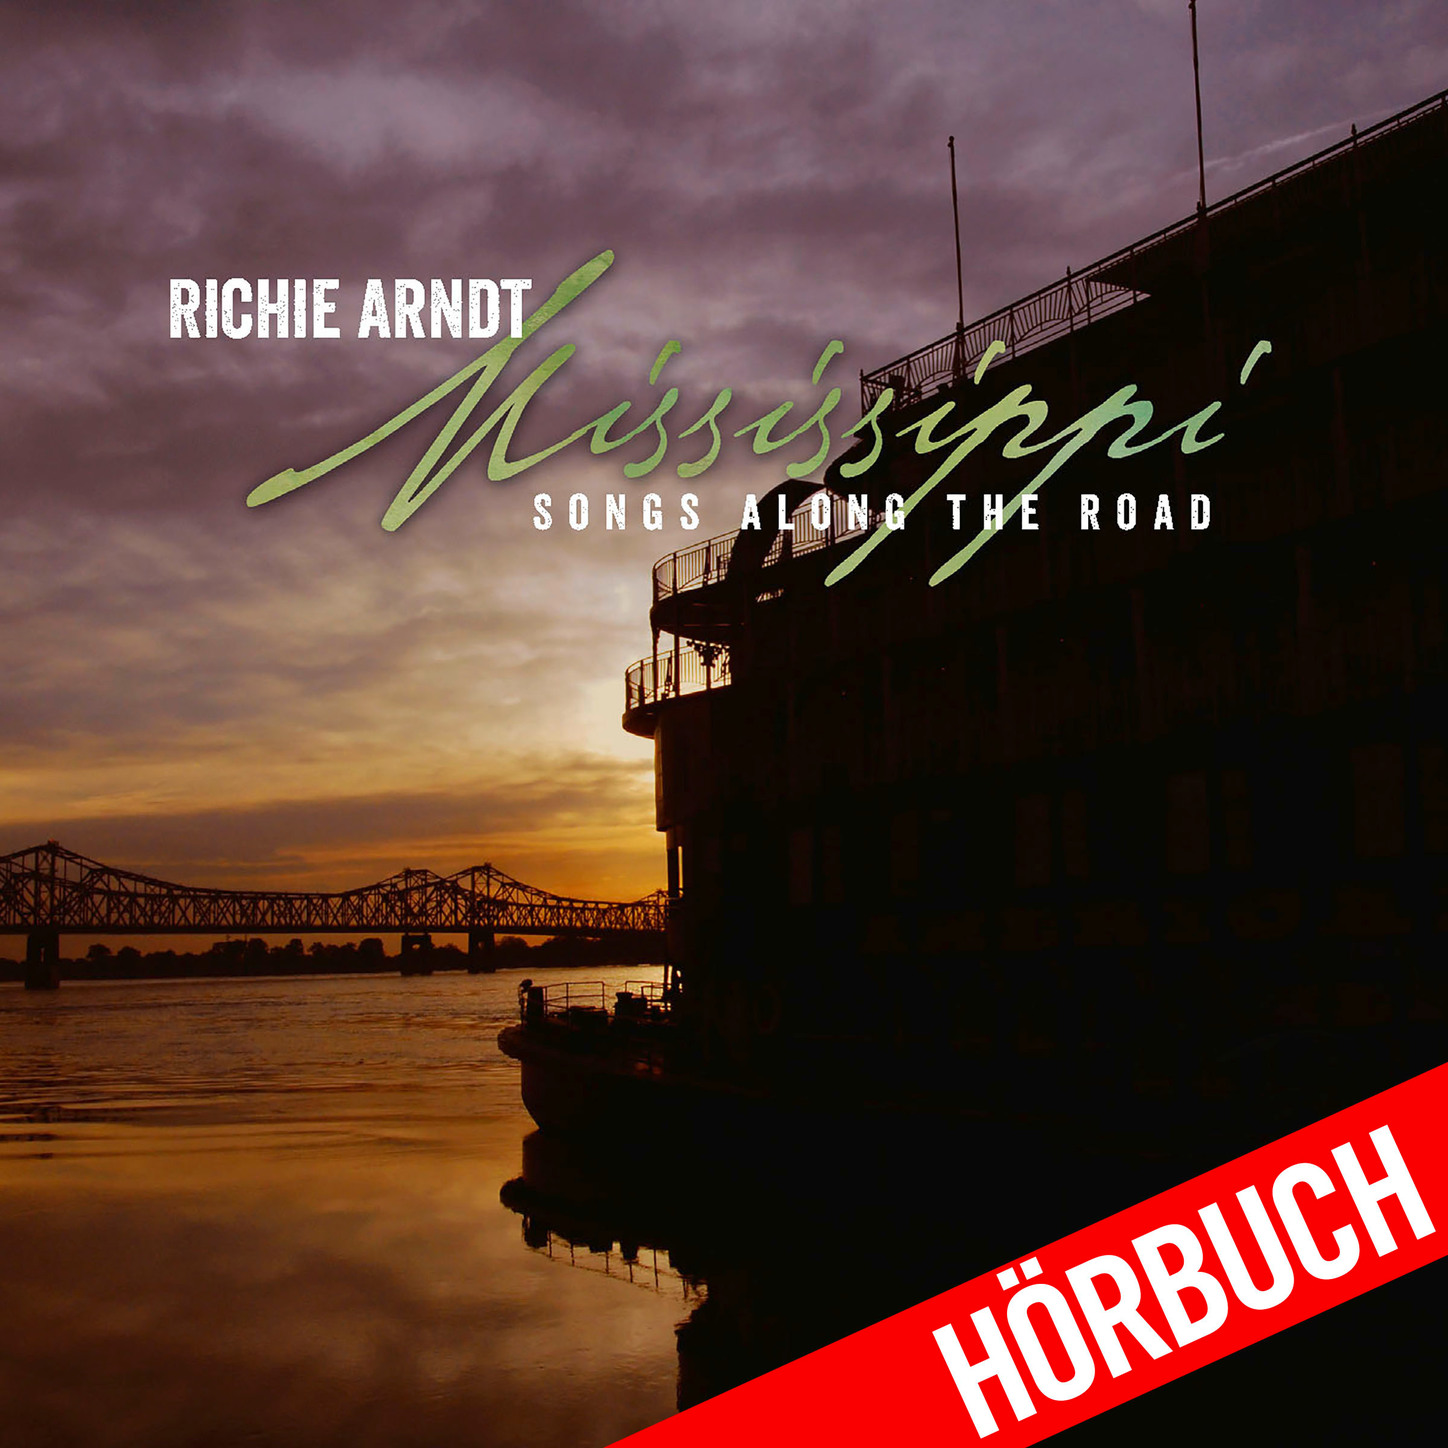 Richie Arndt Mississippi - Songs Along the Road the mambo songs